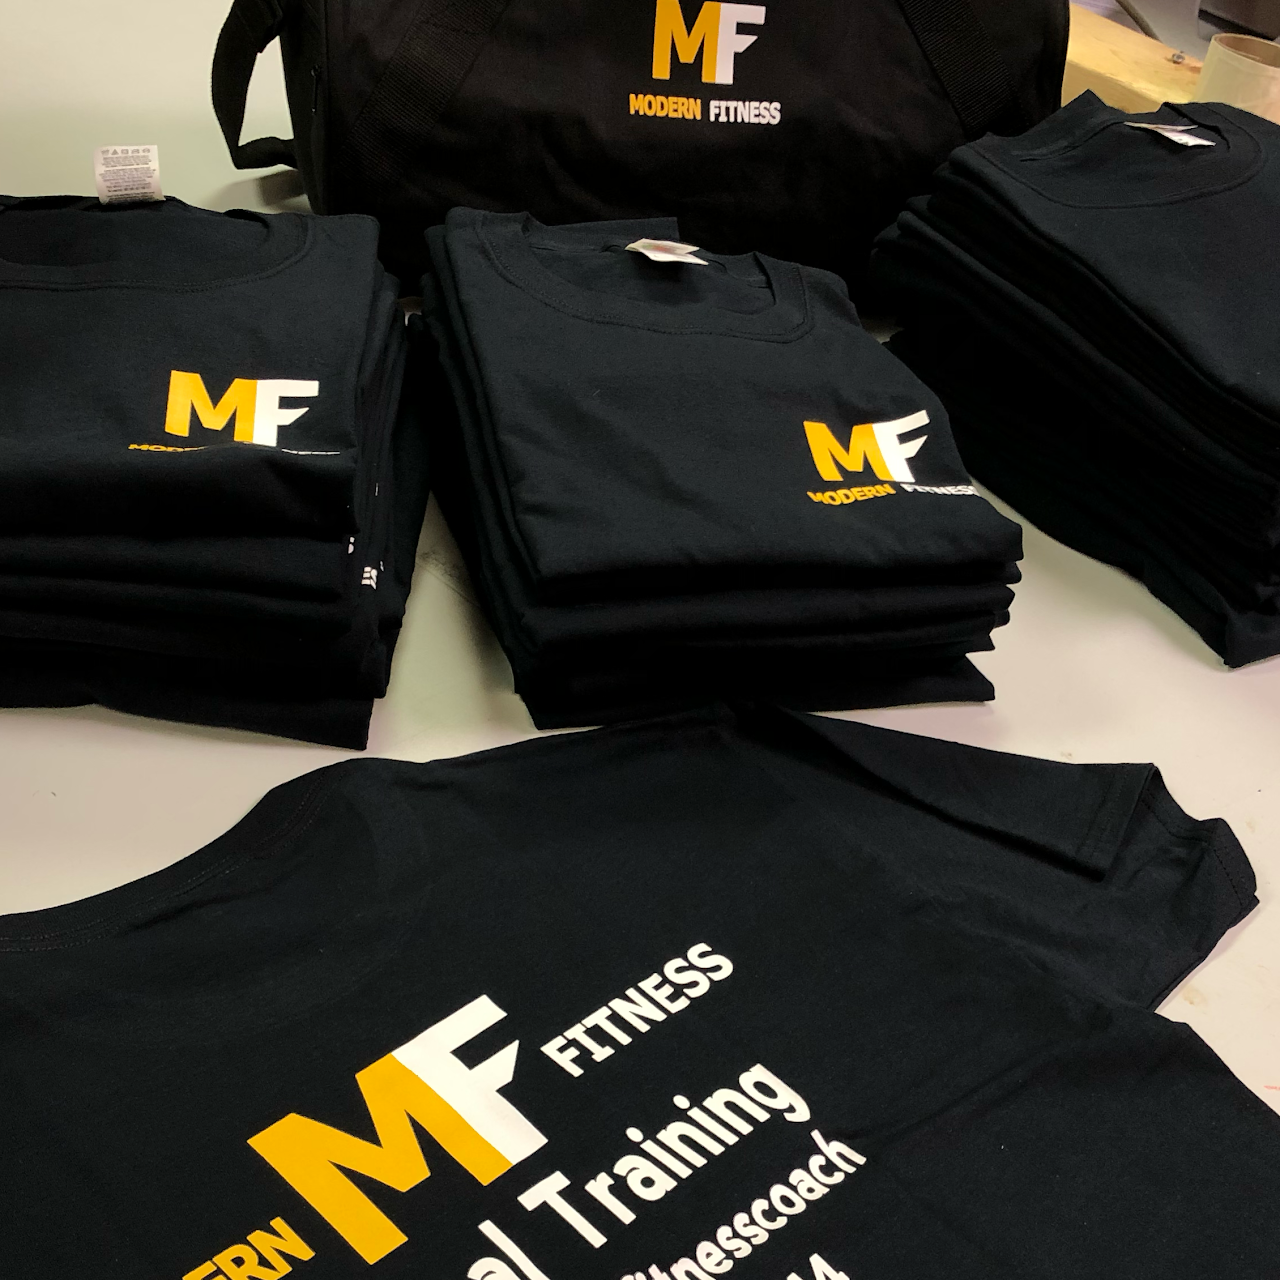 T Shirt Screen Printing In Indianapolis – EDGE Engineering